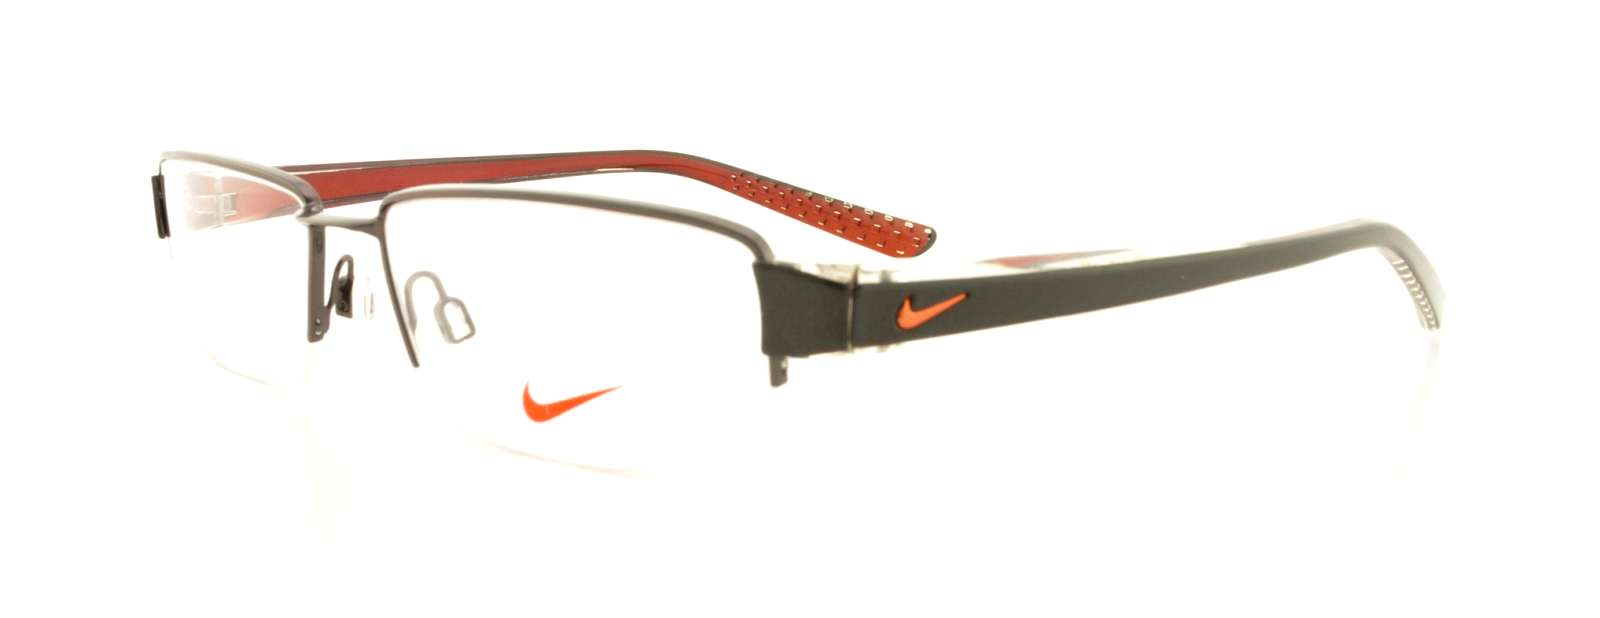 Picture of Nike Eyeglasses 8064